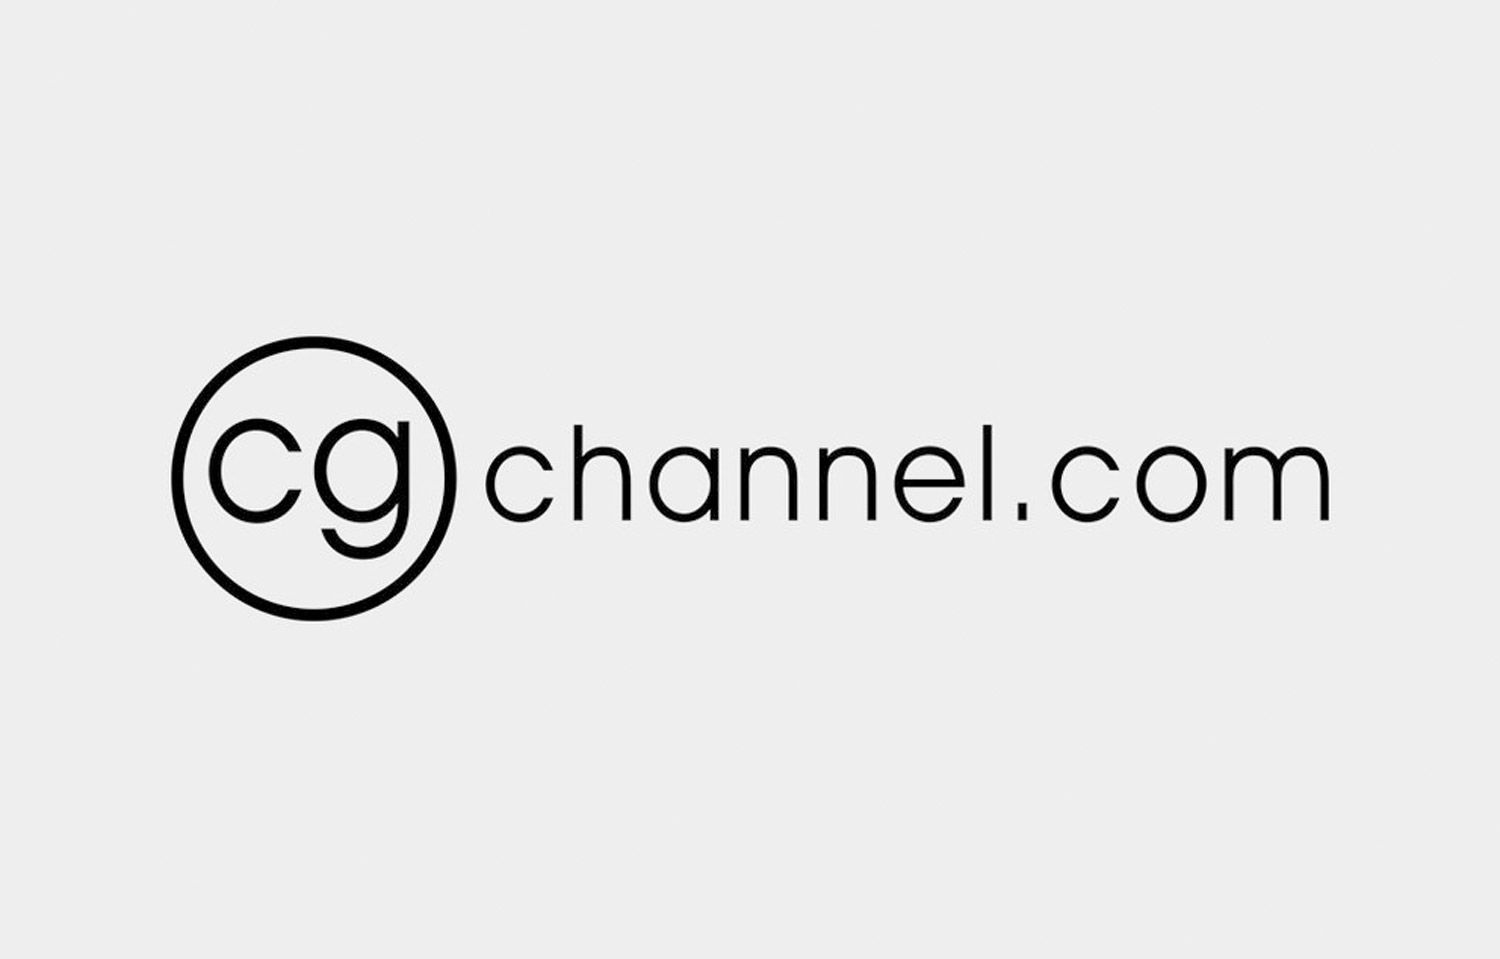 CGchannel